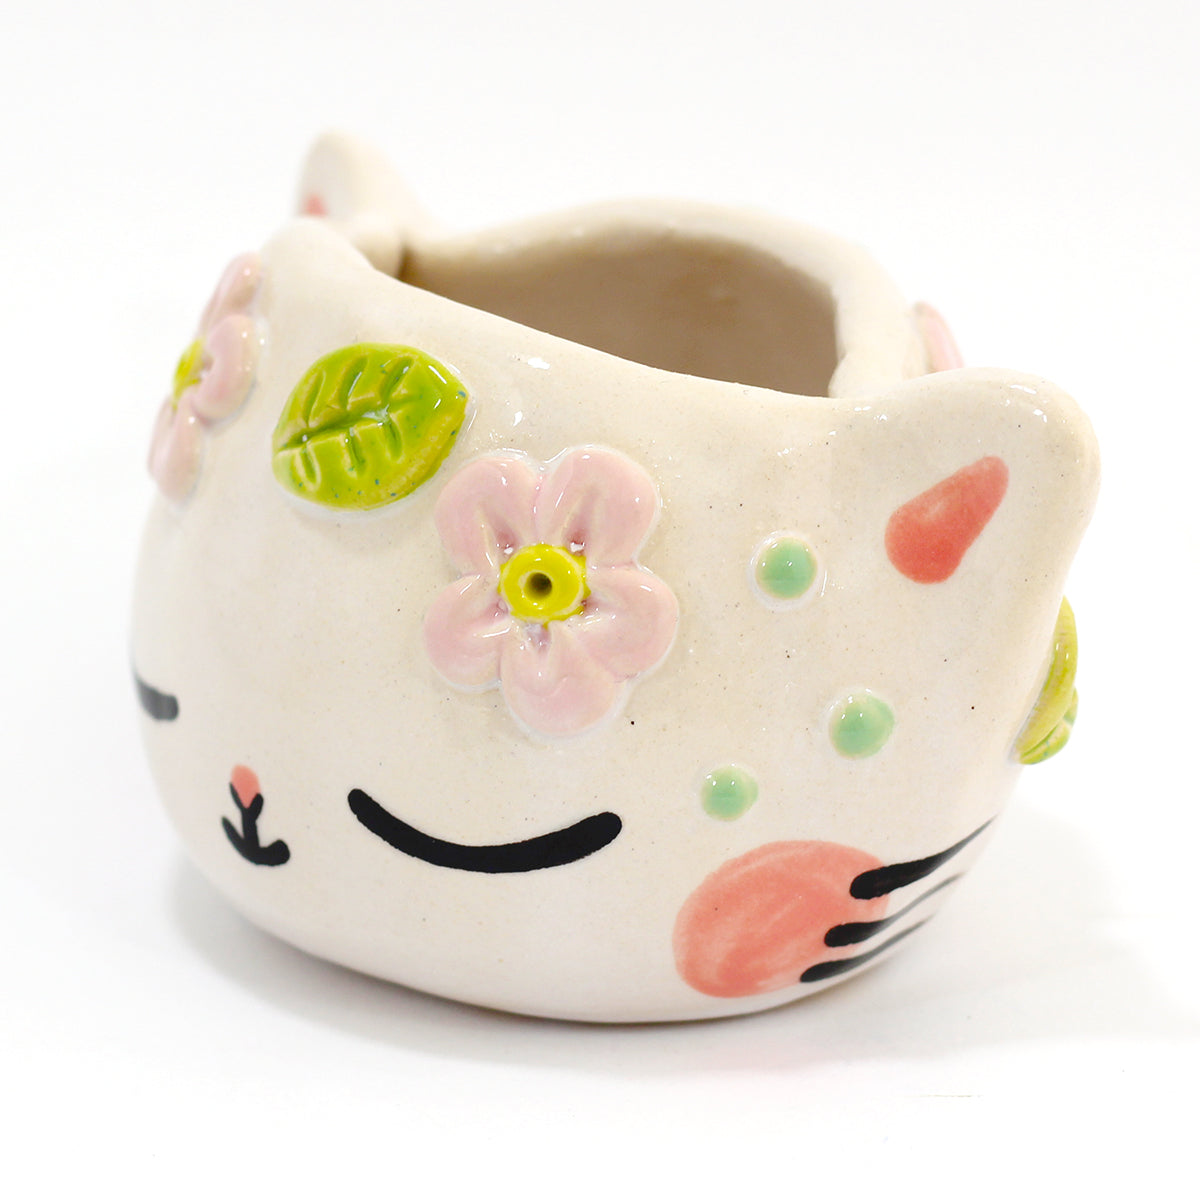 Ceramic Kitty Planter #1307 - M